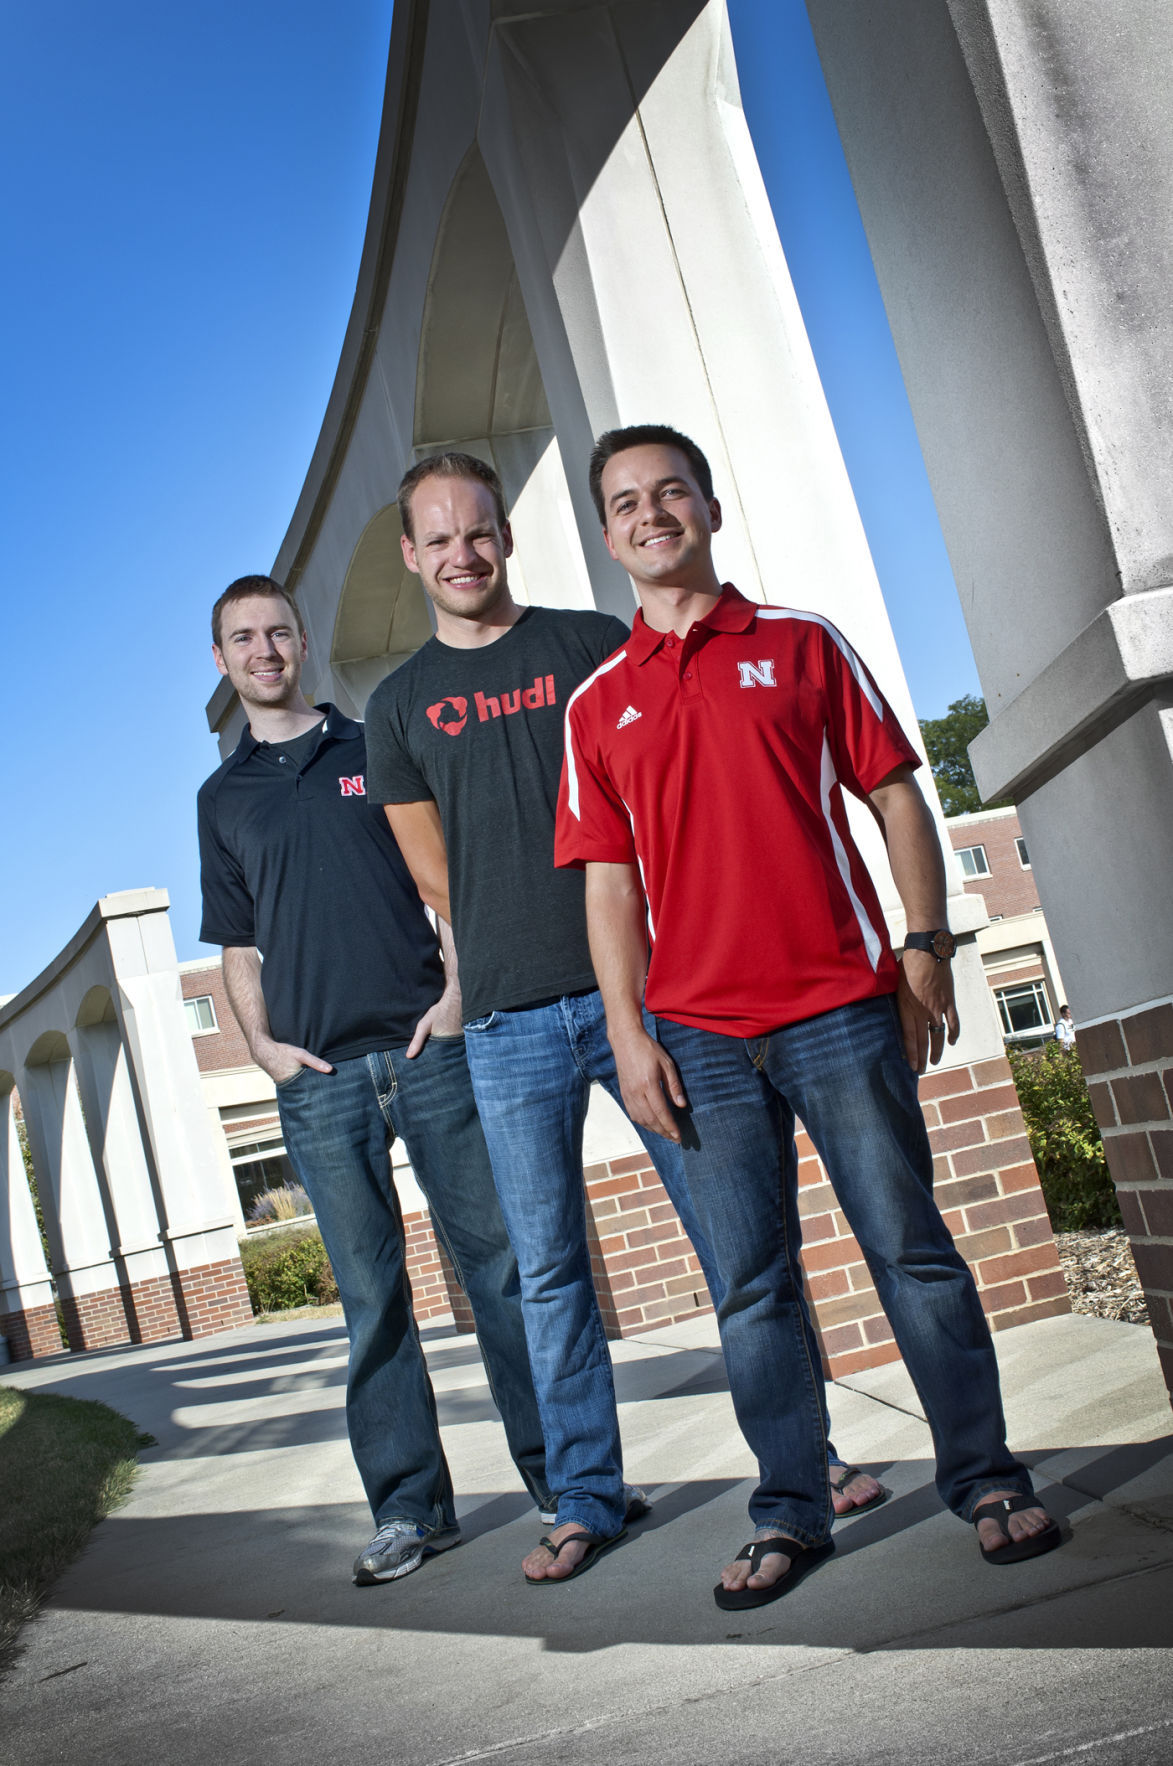 hudl founders